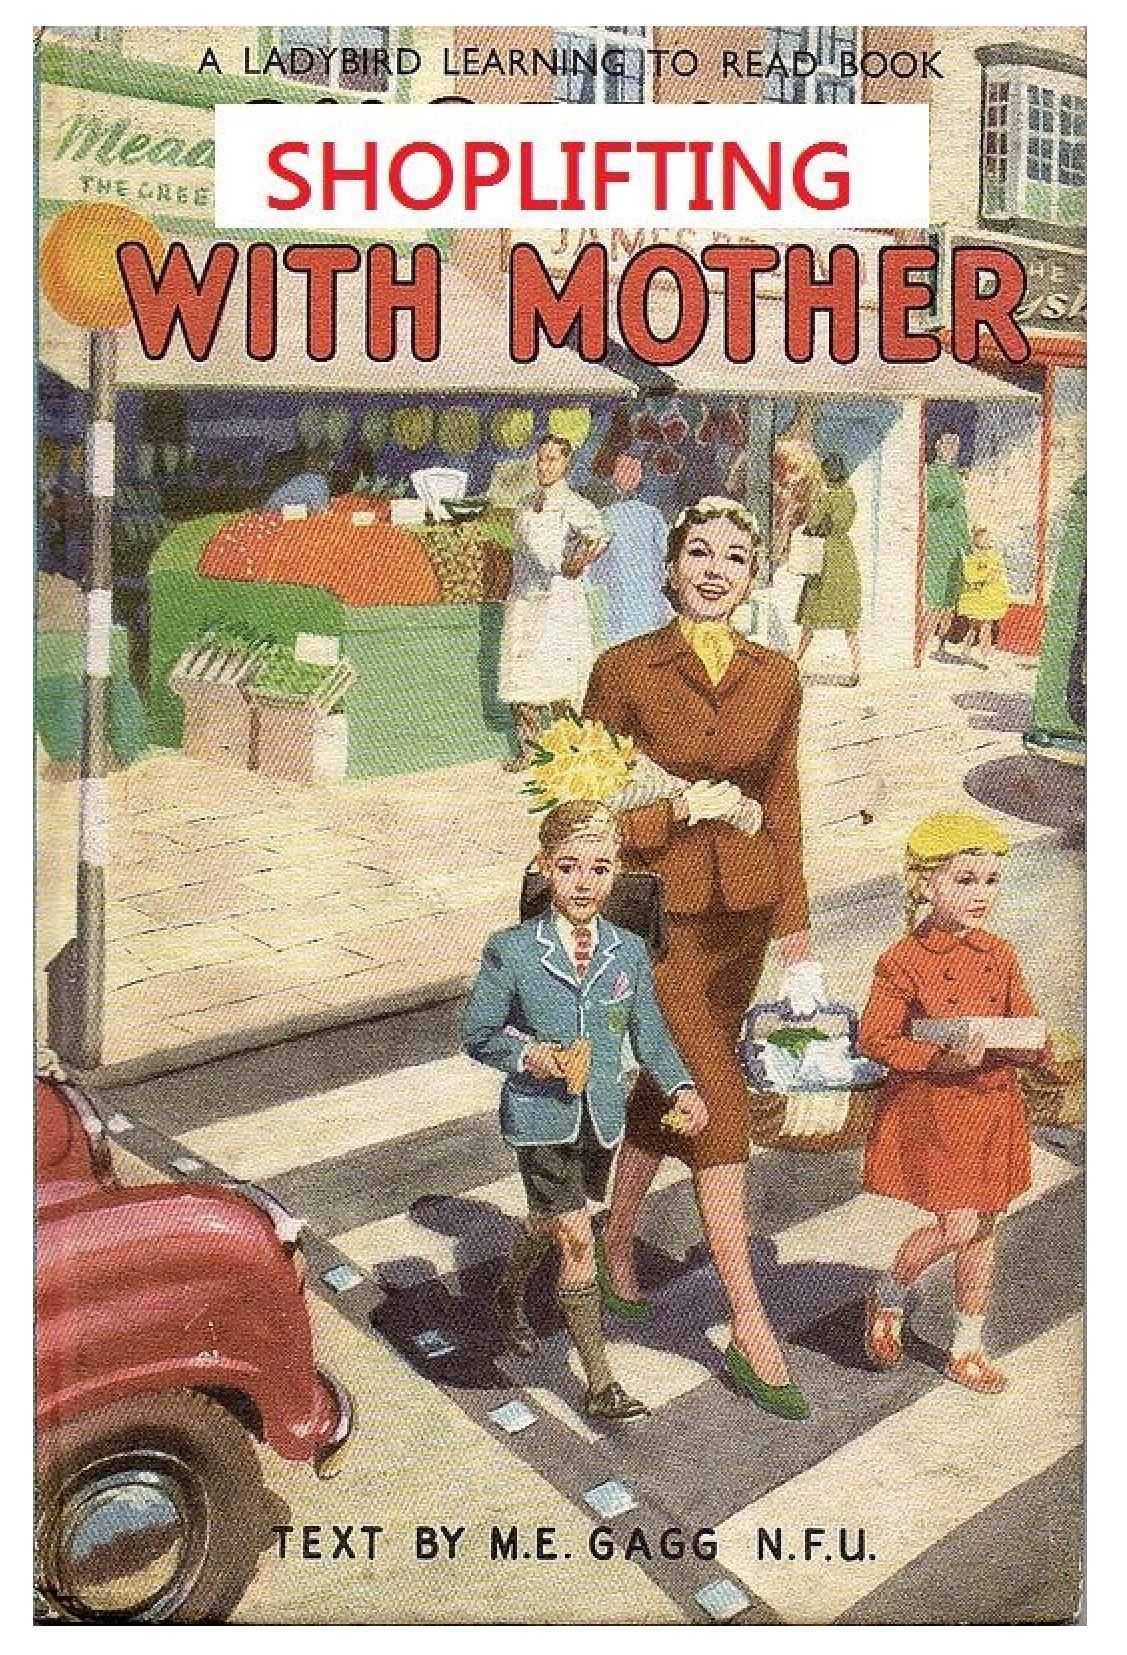 Funny Book Covers Funny Spoof Book Titles Weird Kids Books